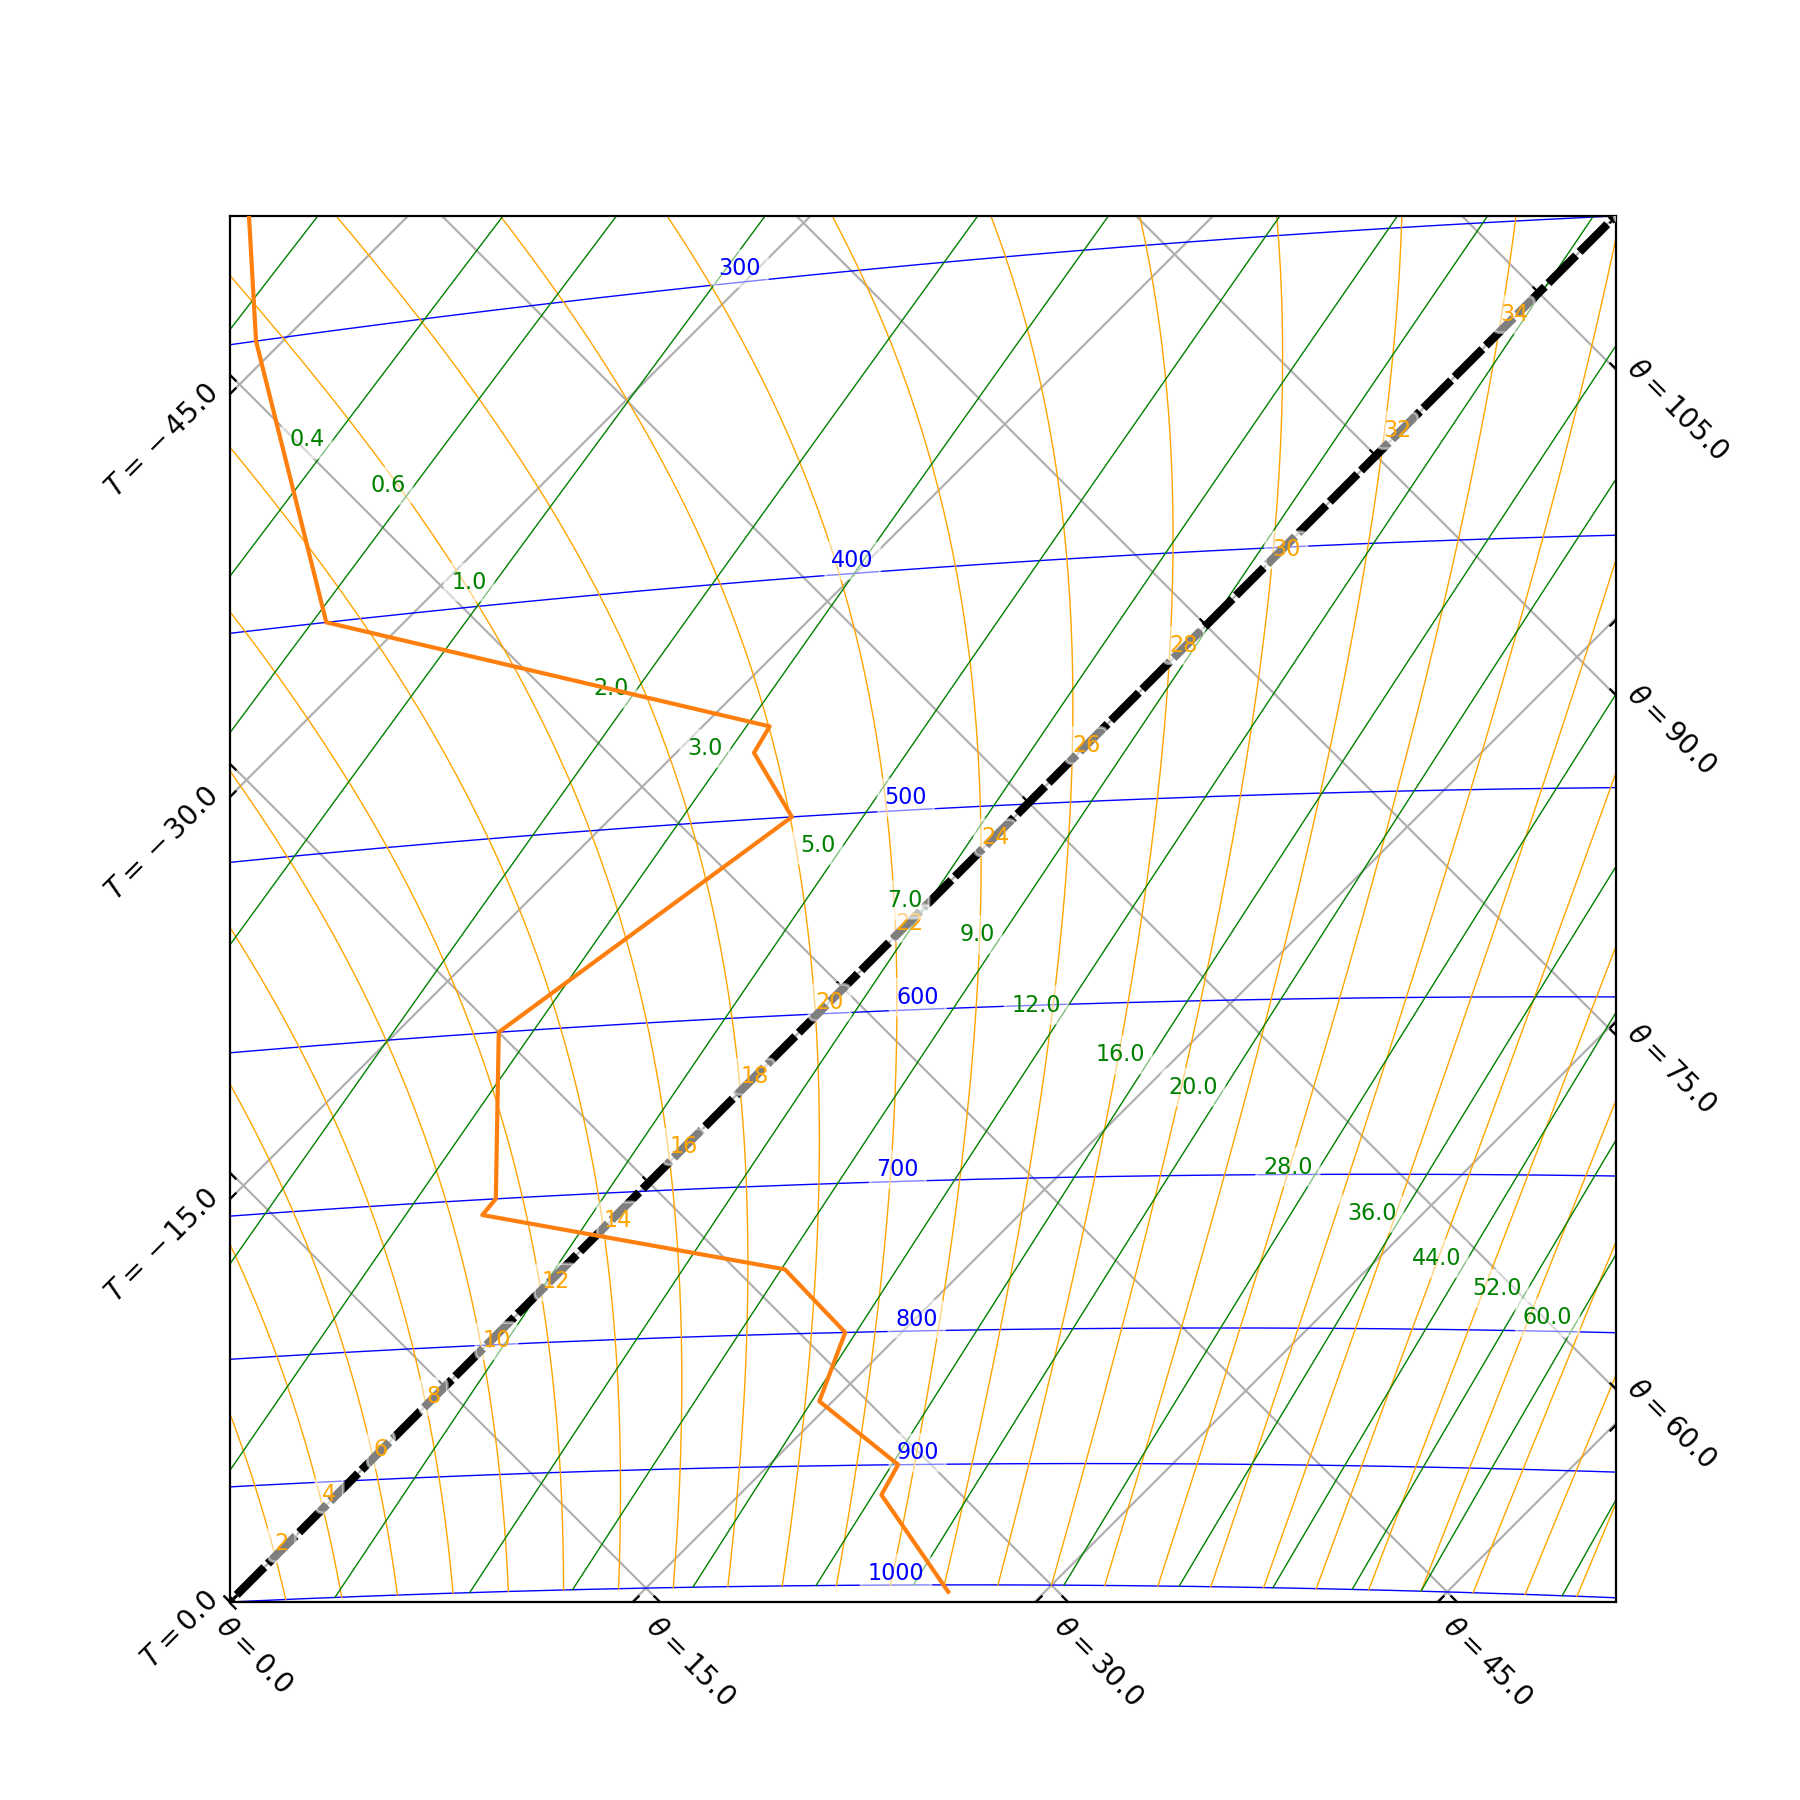 2  Tephigram plotting — tephi 0 1 0 documentation